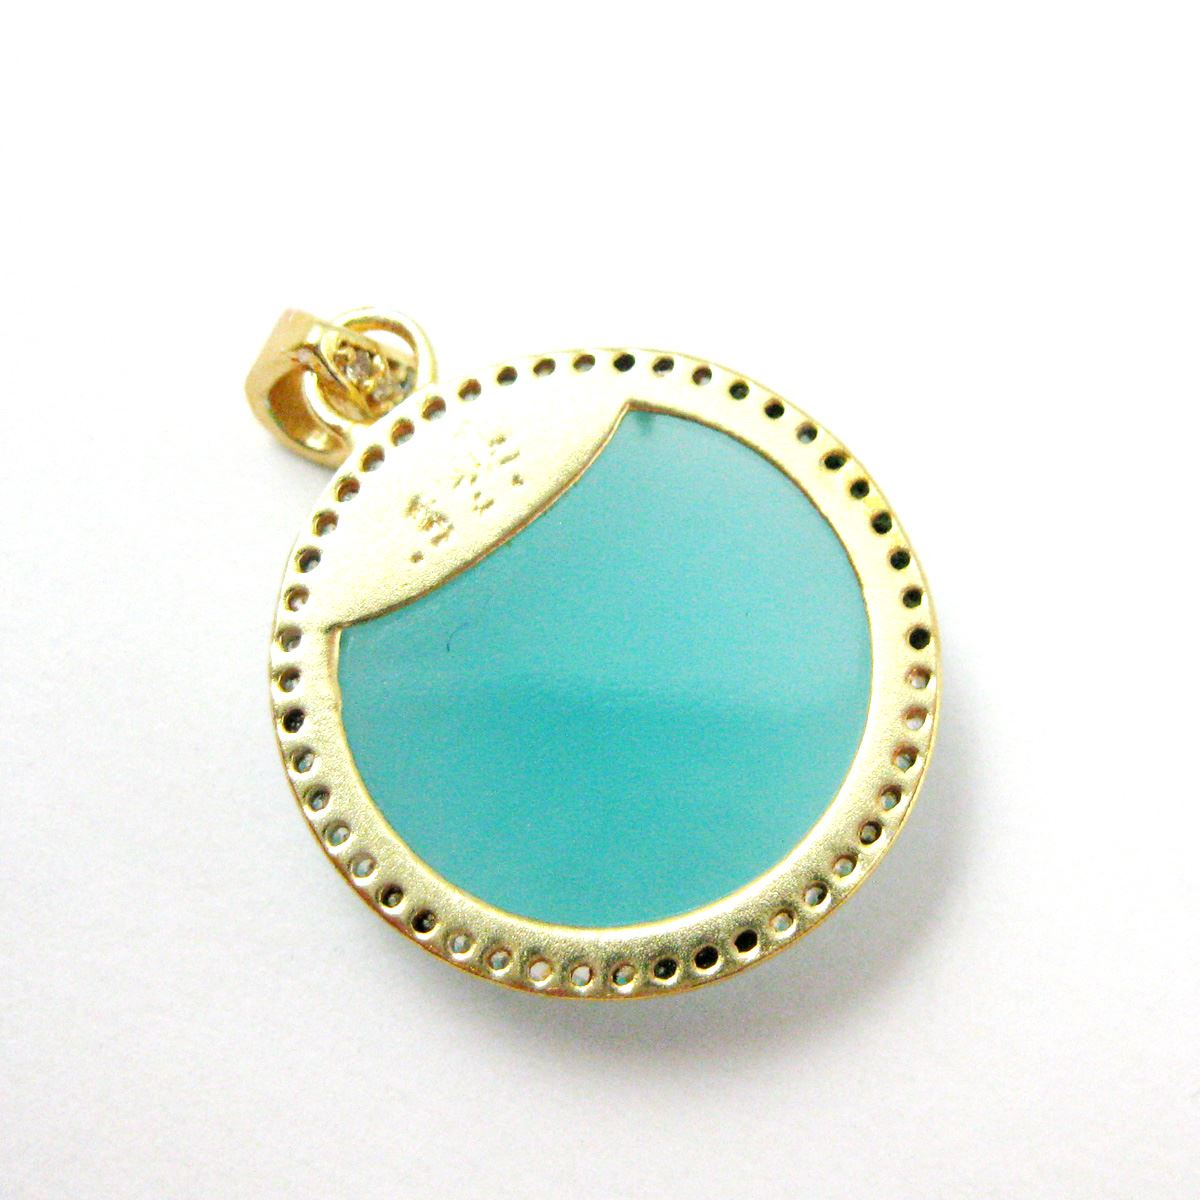 22k Gold plated Sterling Silver Pave Bezel Gemstone Pendant - Cubic Zirconia Pave Setting -  Round Faceted Stone- Peru Chalcedony- 21mm